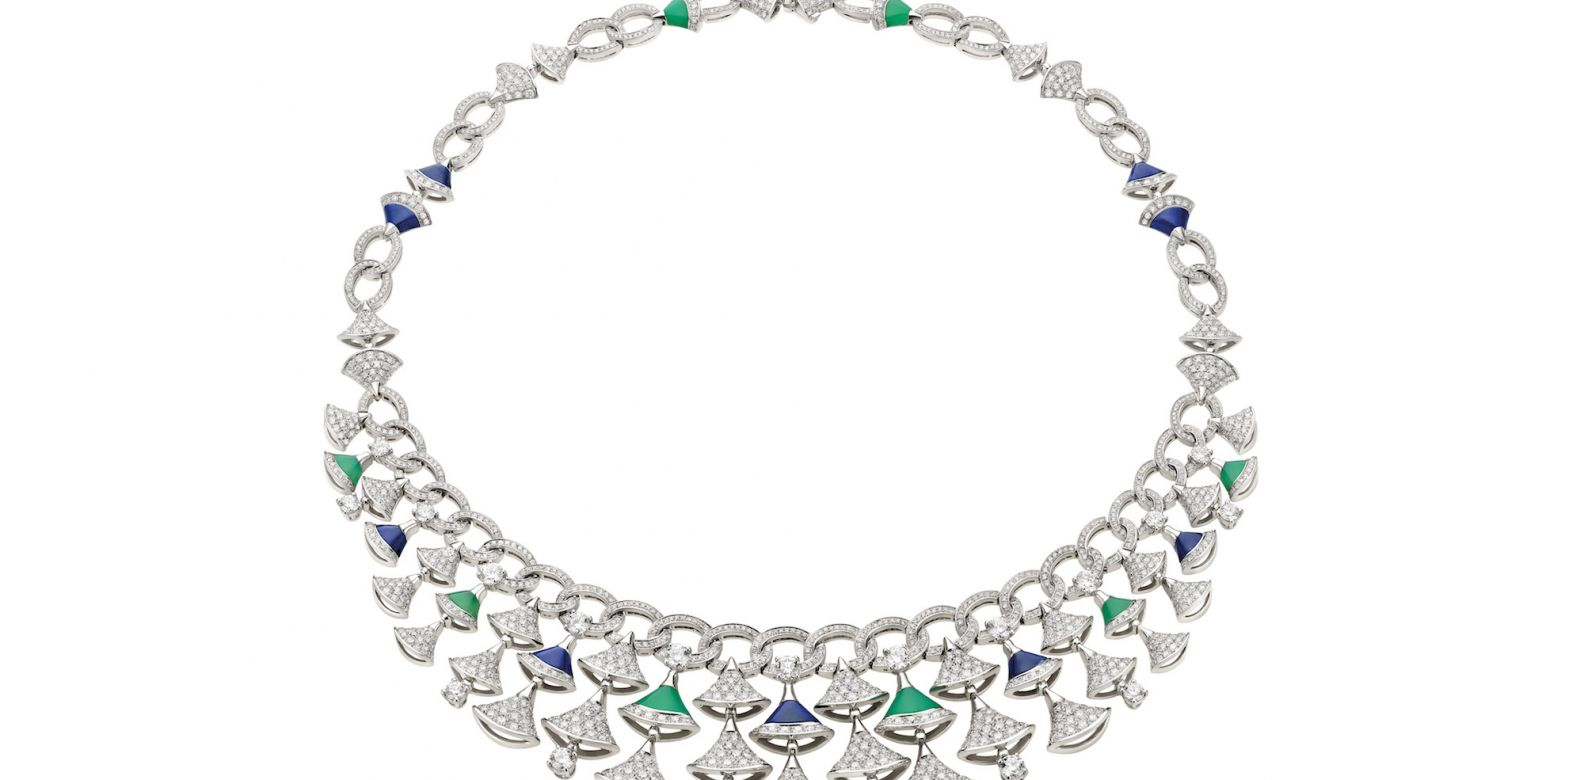 Necklace in white gold with chrysoprase and lapis lazuli and diamonds (10.12cts)